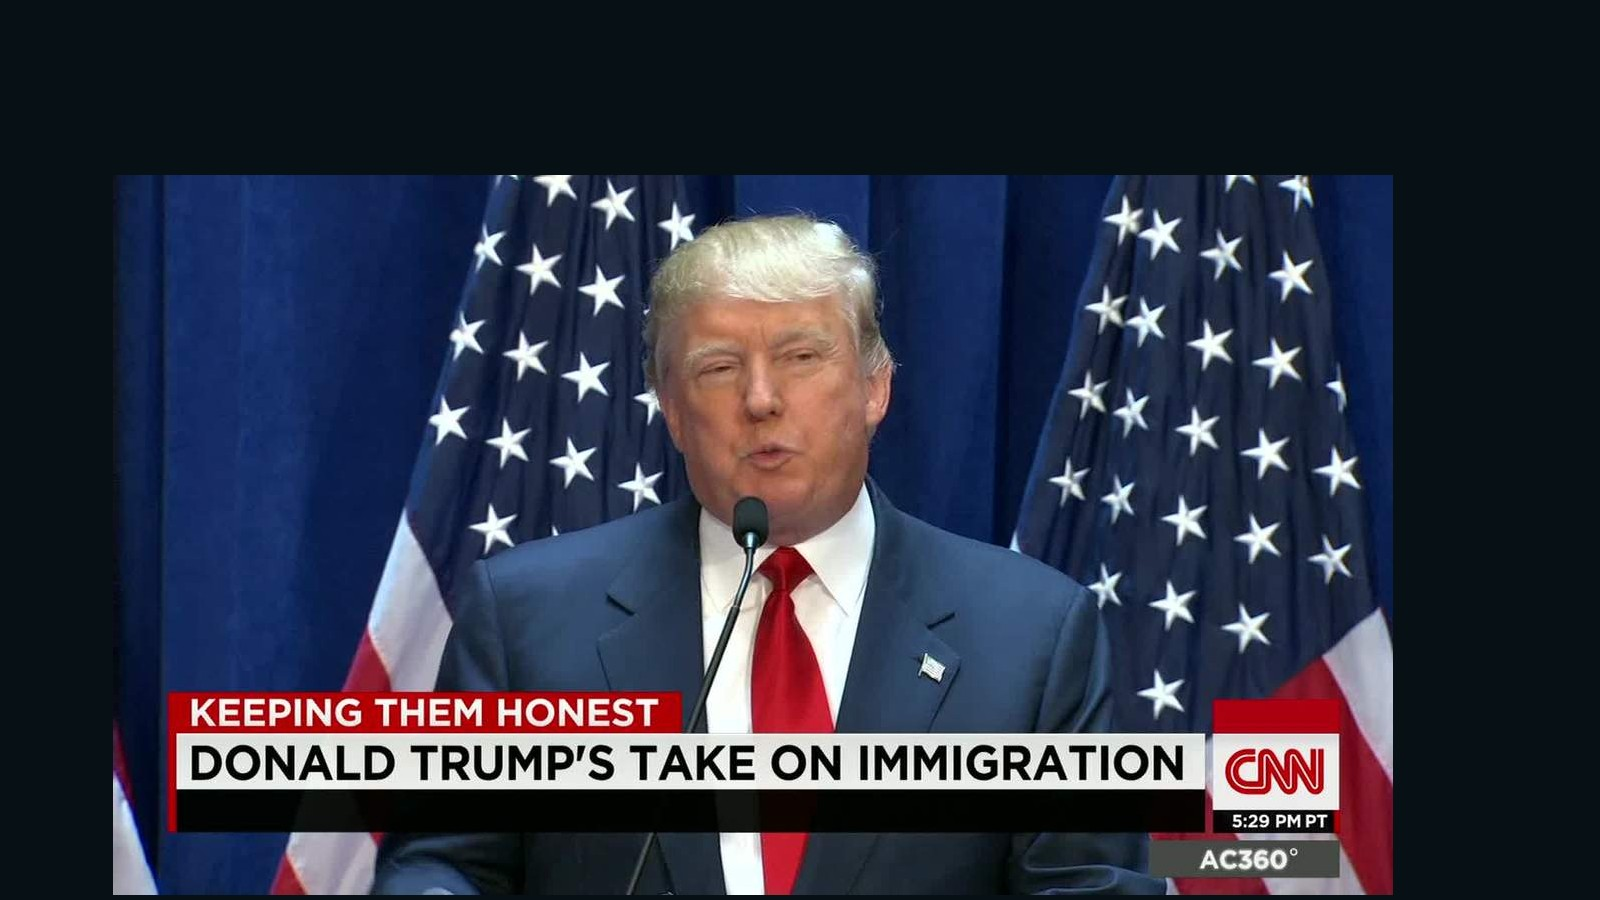 Trump leading the way to anti-immigrant sentiment